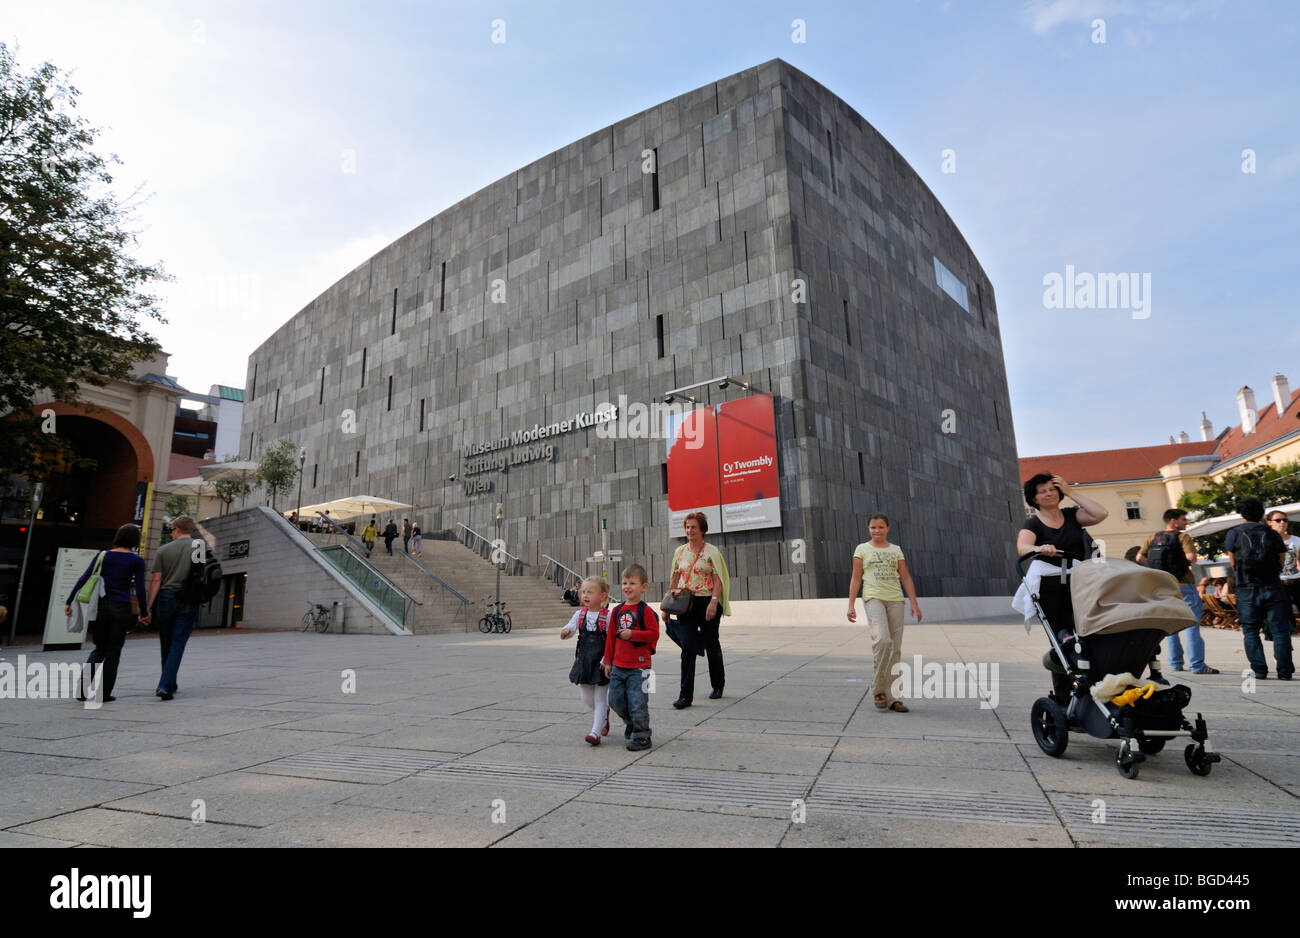 Family in front of MUMOK (Museum Moderner Kunst or Museum of Modern Art) Building at MuseumsQuartier in Vienna (Wien), - Stock Image